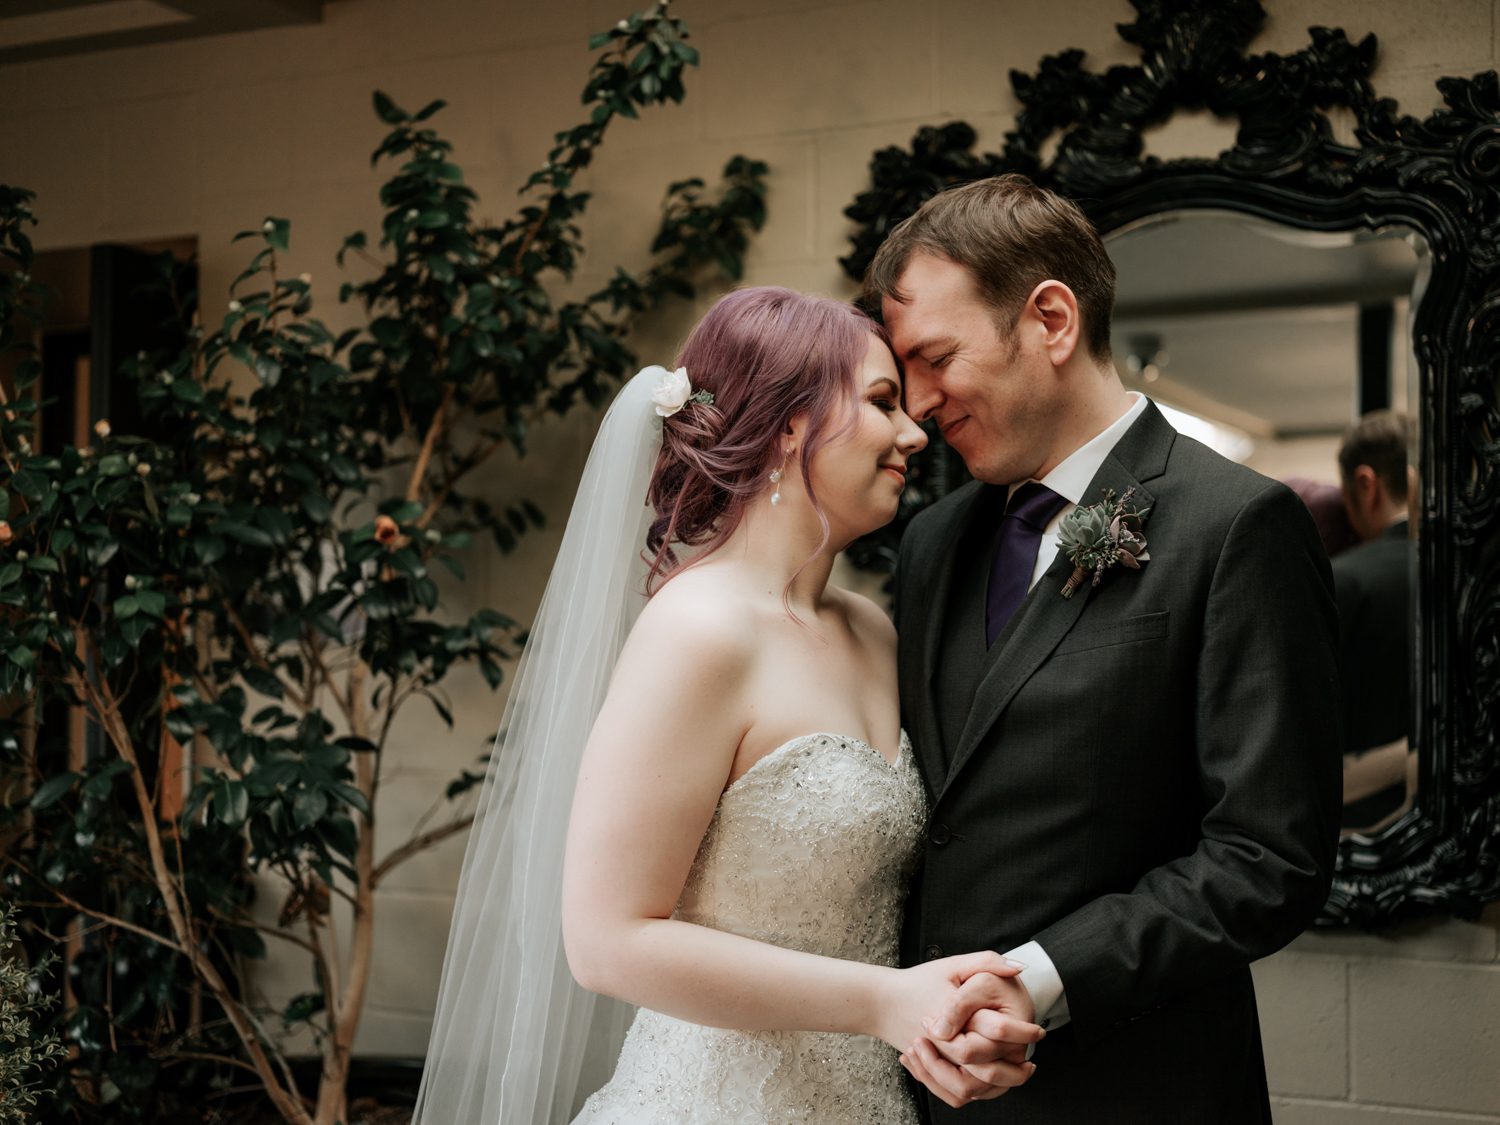 stolen glimpses ballard hotel seattle wedding photographer 30.jpg